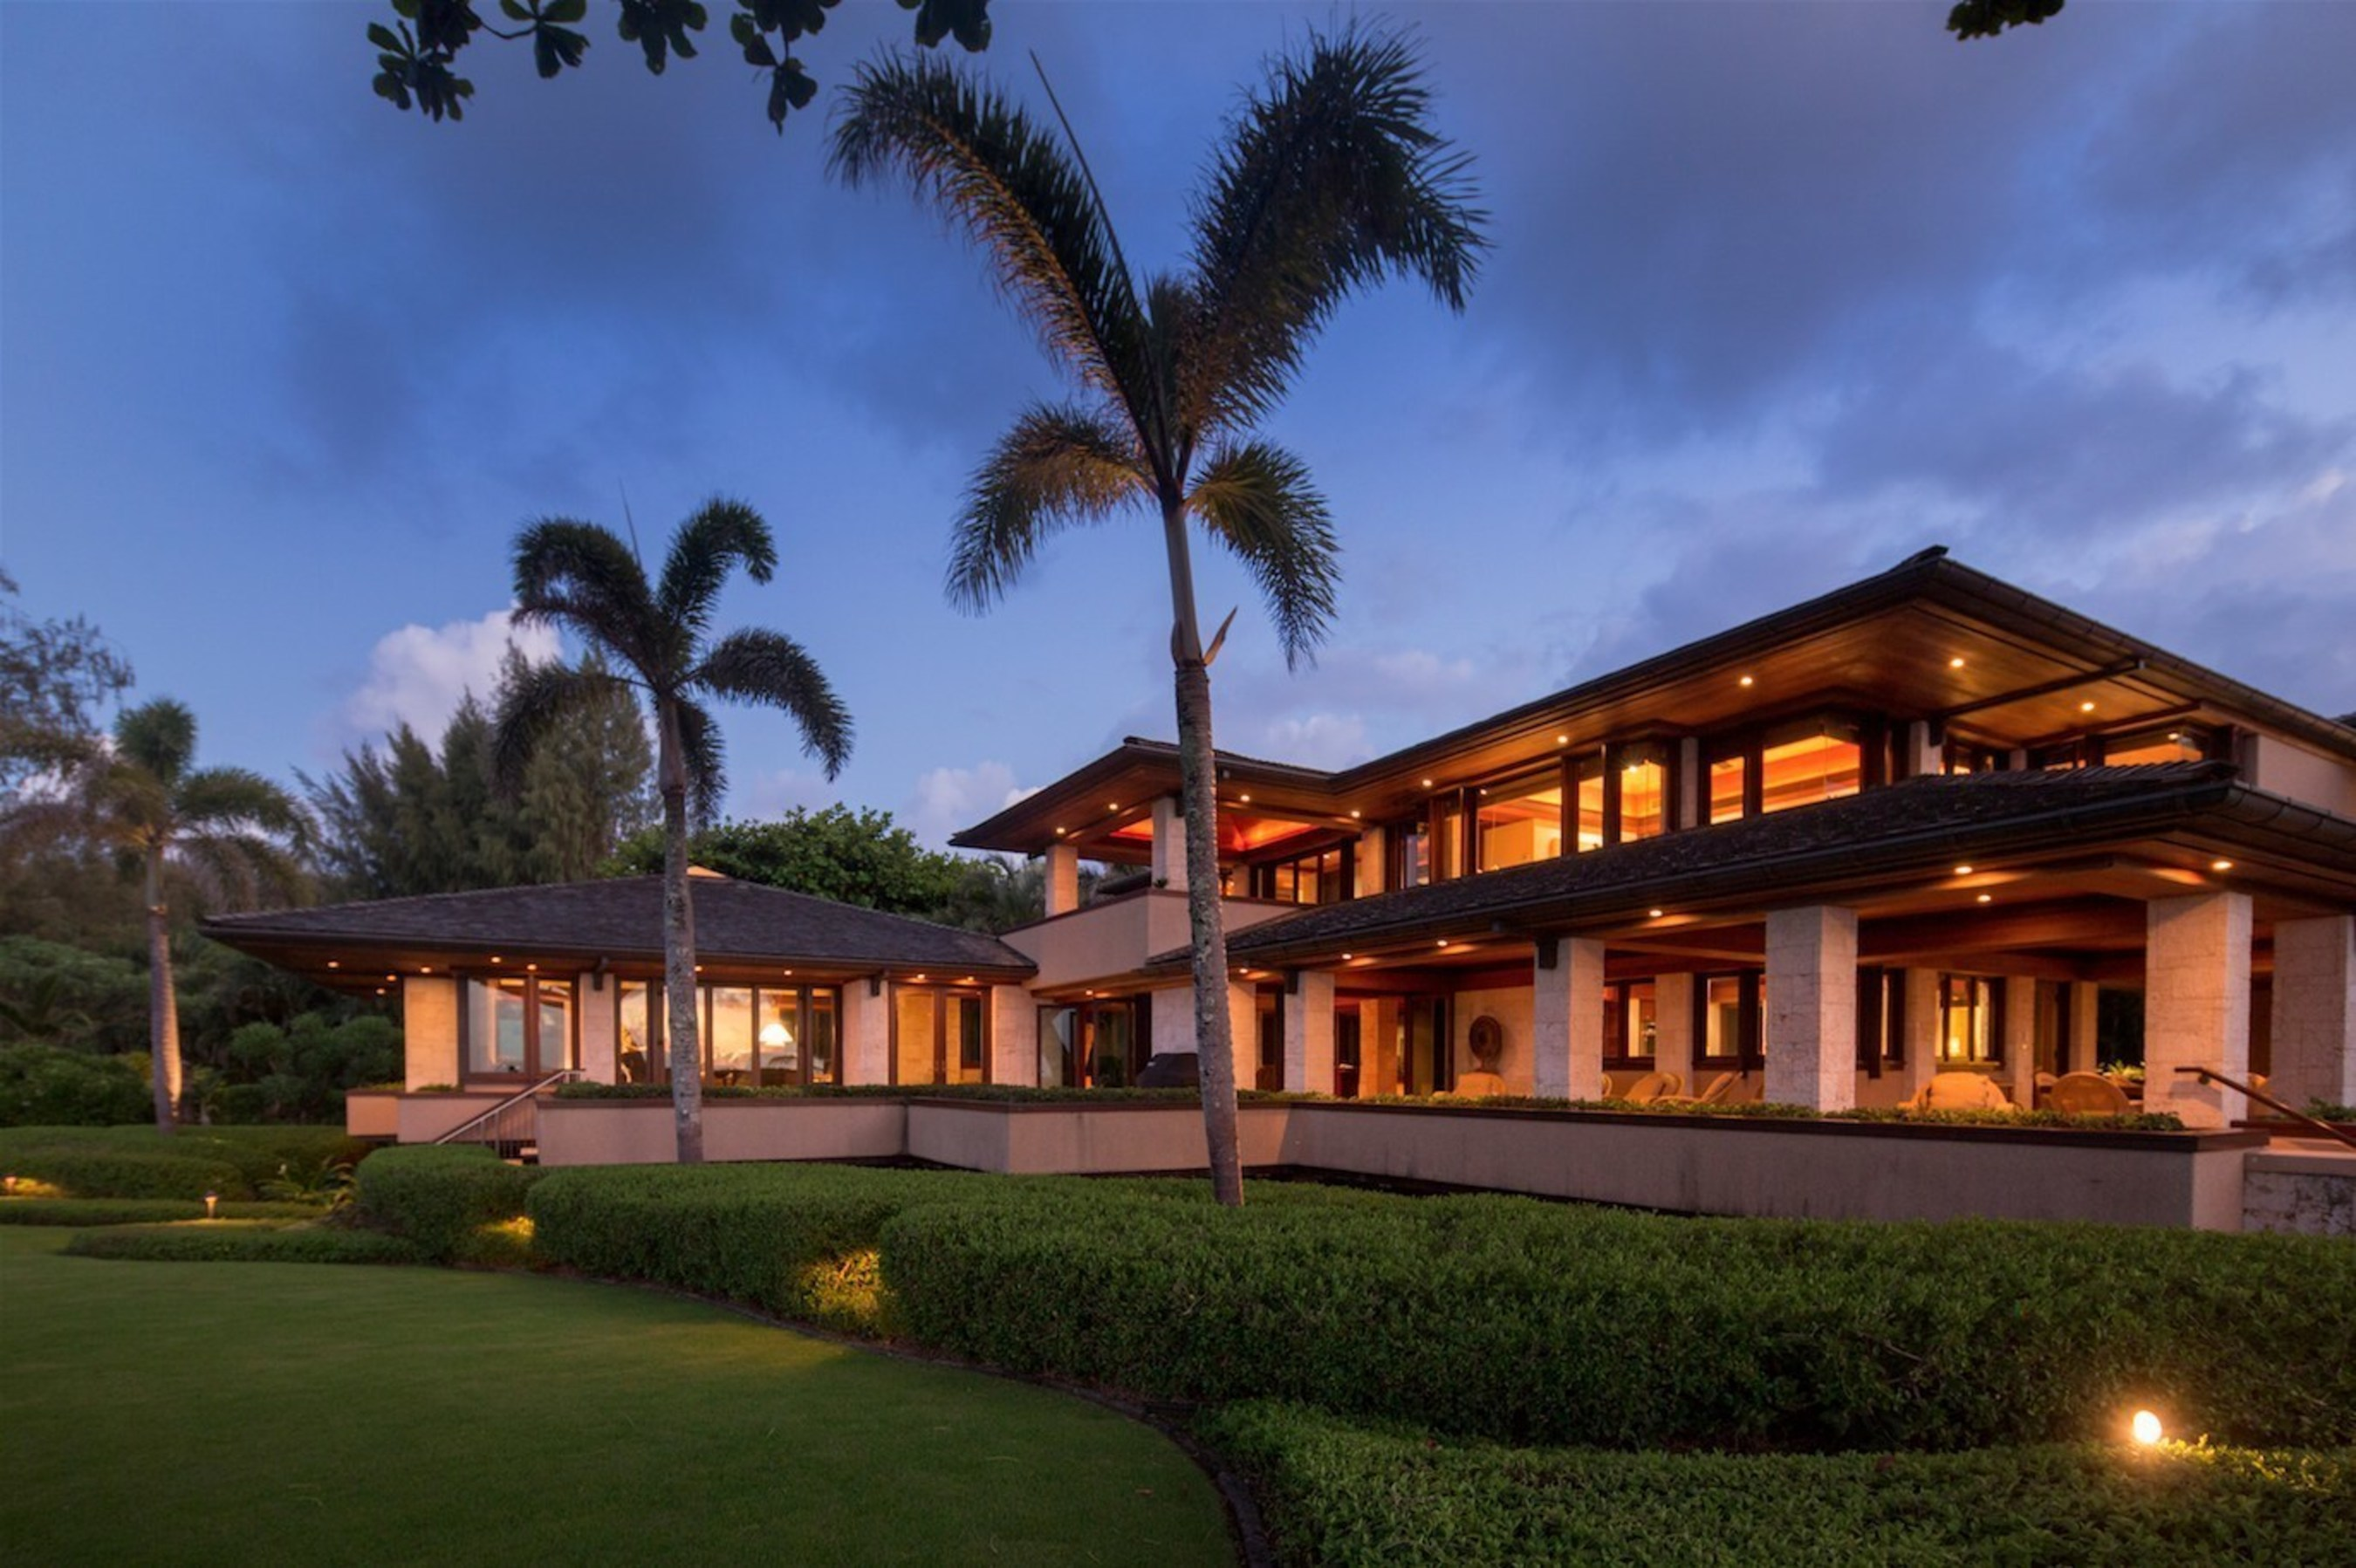 One Of Hawaii's Finest Homes, Located On The Famed North Shore Of Kauai, To Sell At Auction Through Concierge Auctions